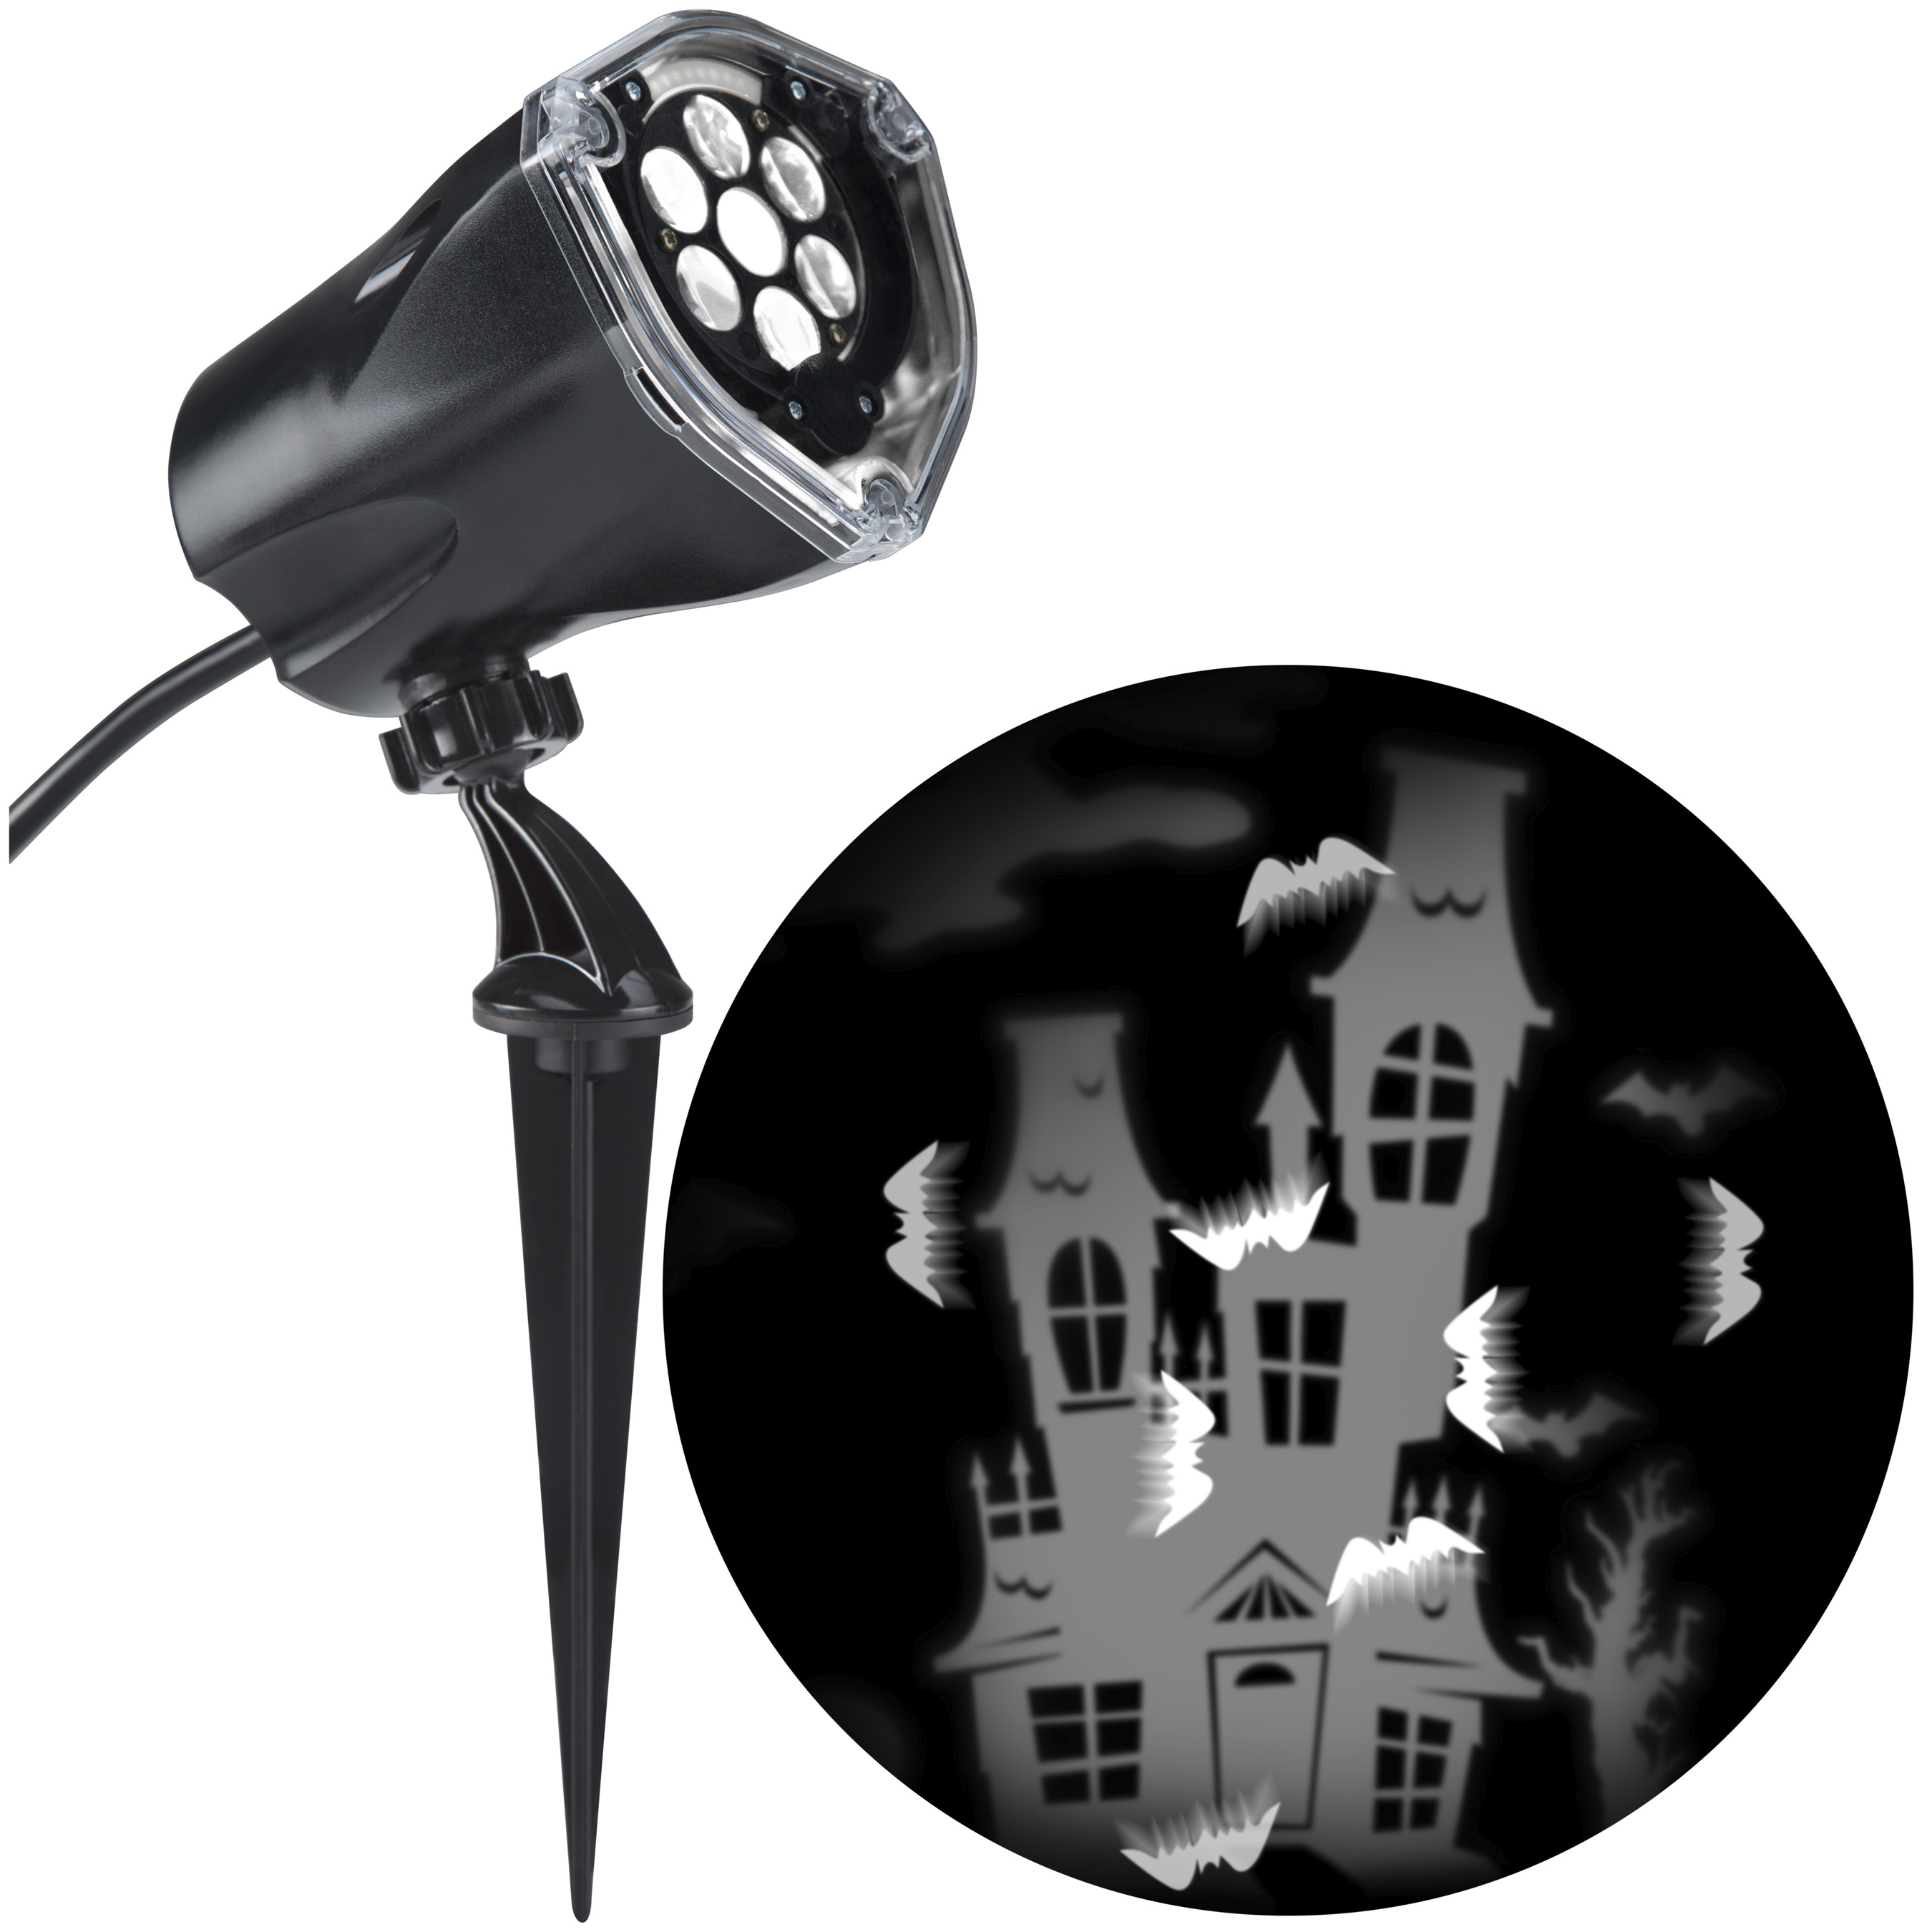 Gemmy Whirl-A-Motion Multi-Function White Led Multi-Design Halloween Outdoor Stake Light Projector